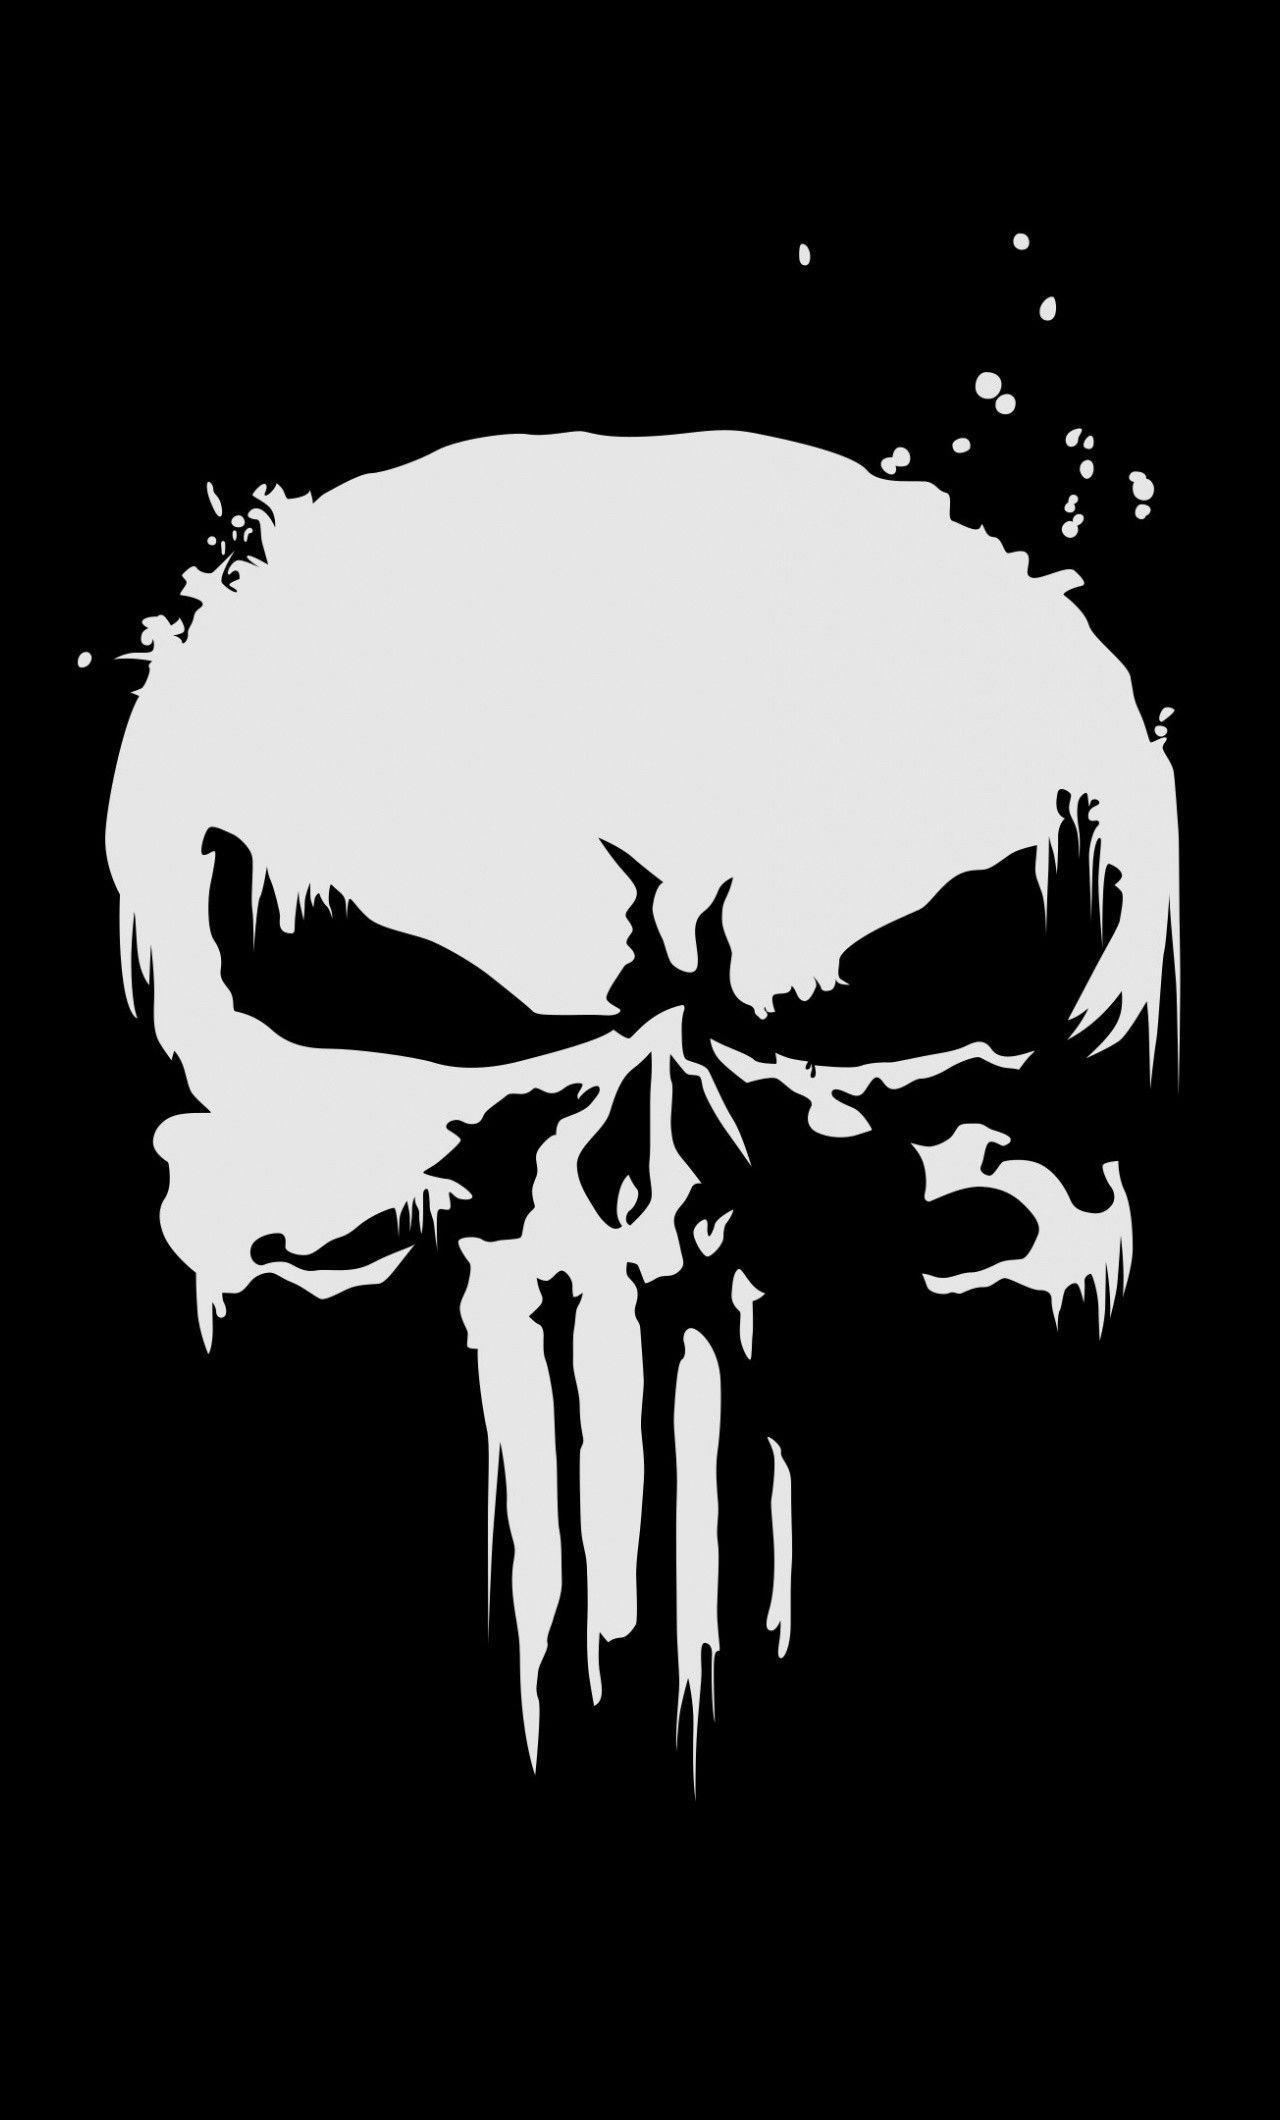 Luxury The Punisher Iphone Wallpaper Daredevil Punisher Superhero Wallpaper Punisher Logo